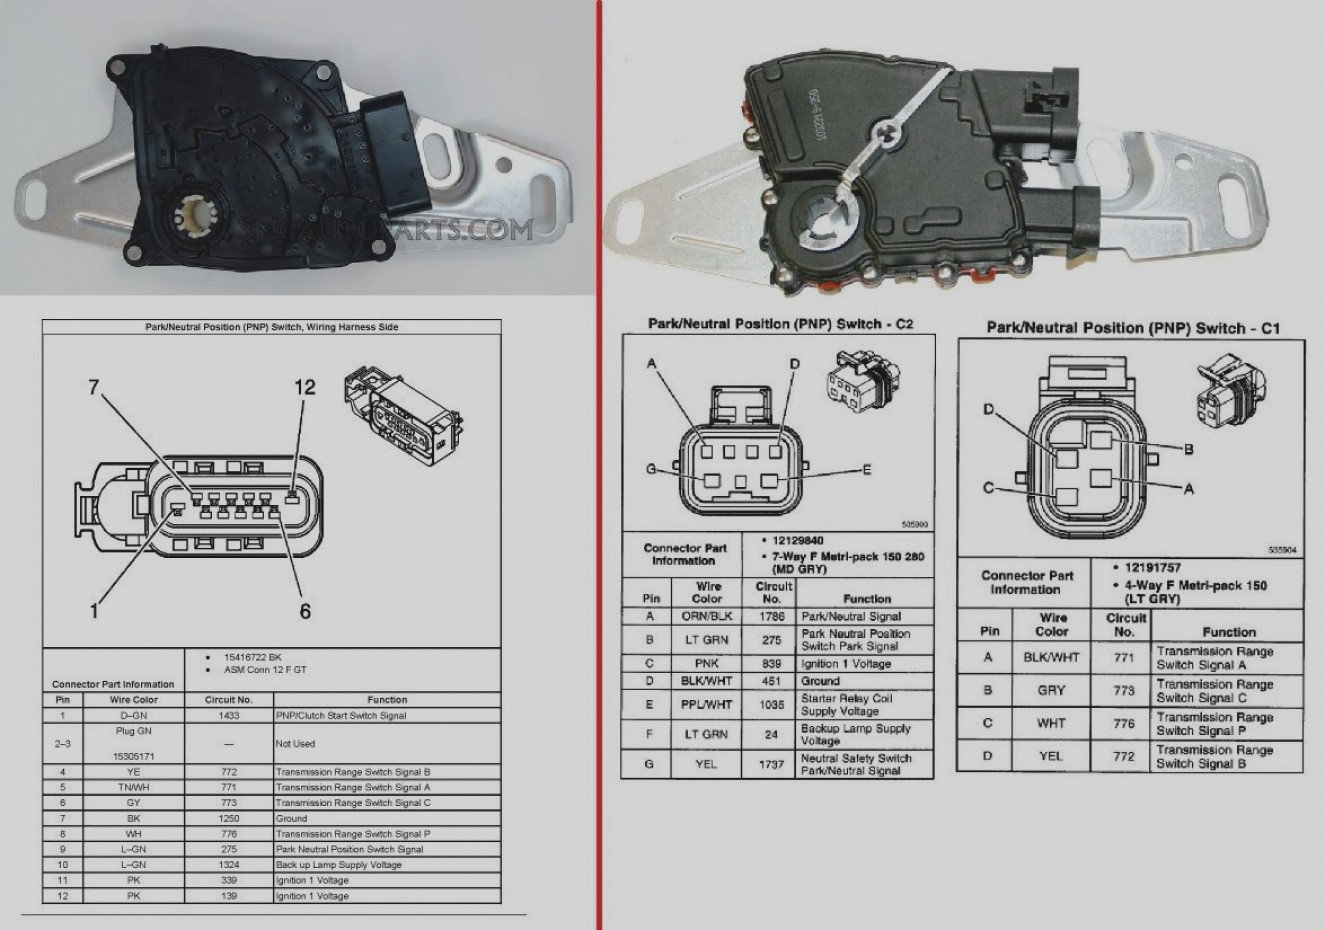 Neutral Safety Relay Wiring Diagram | Wiring Library - Neutral Safety Switch Wiring Diagram Chevy